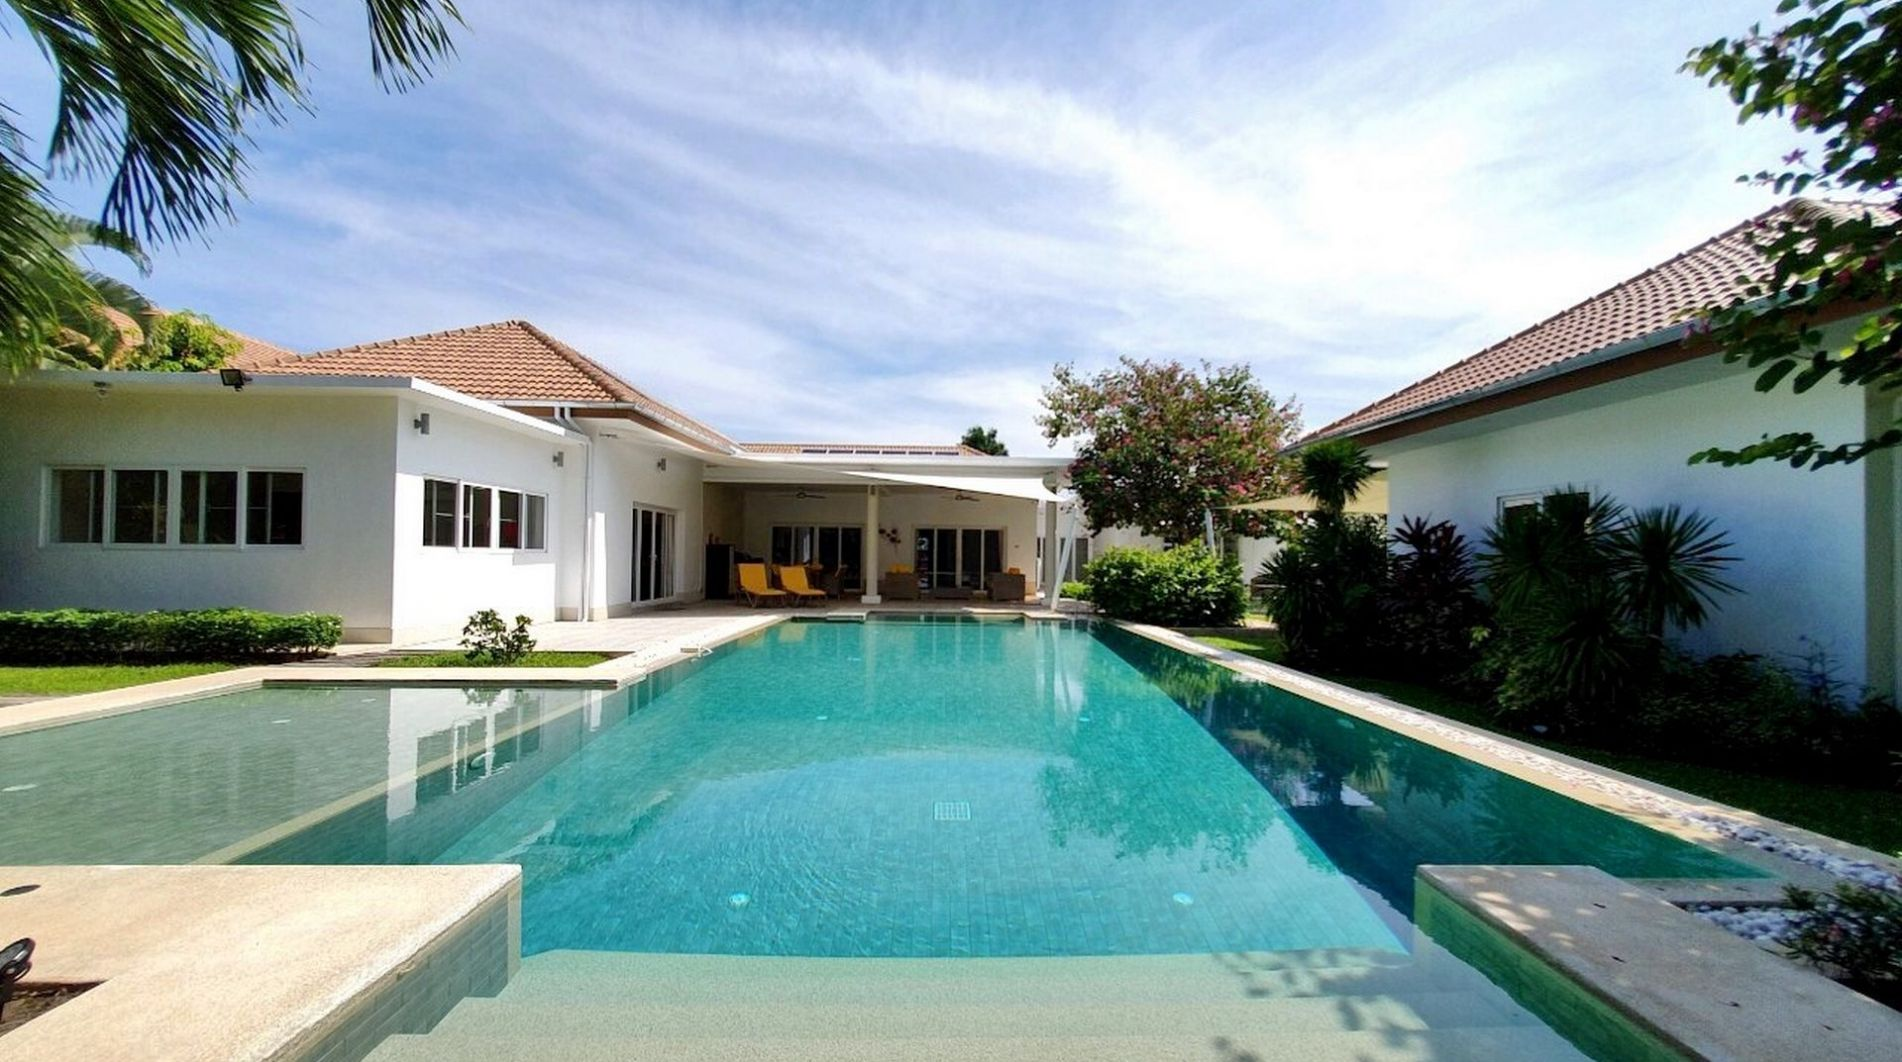 thailand-homes-for-sale-1687258919